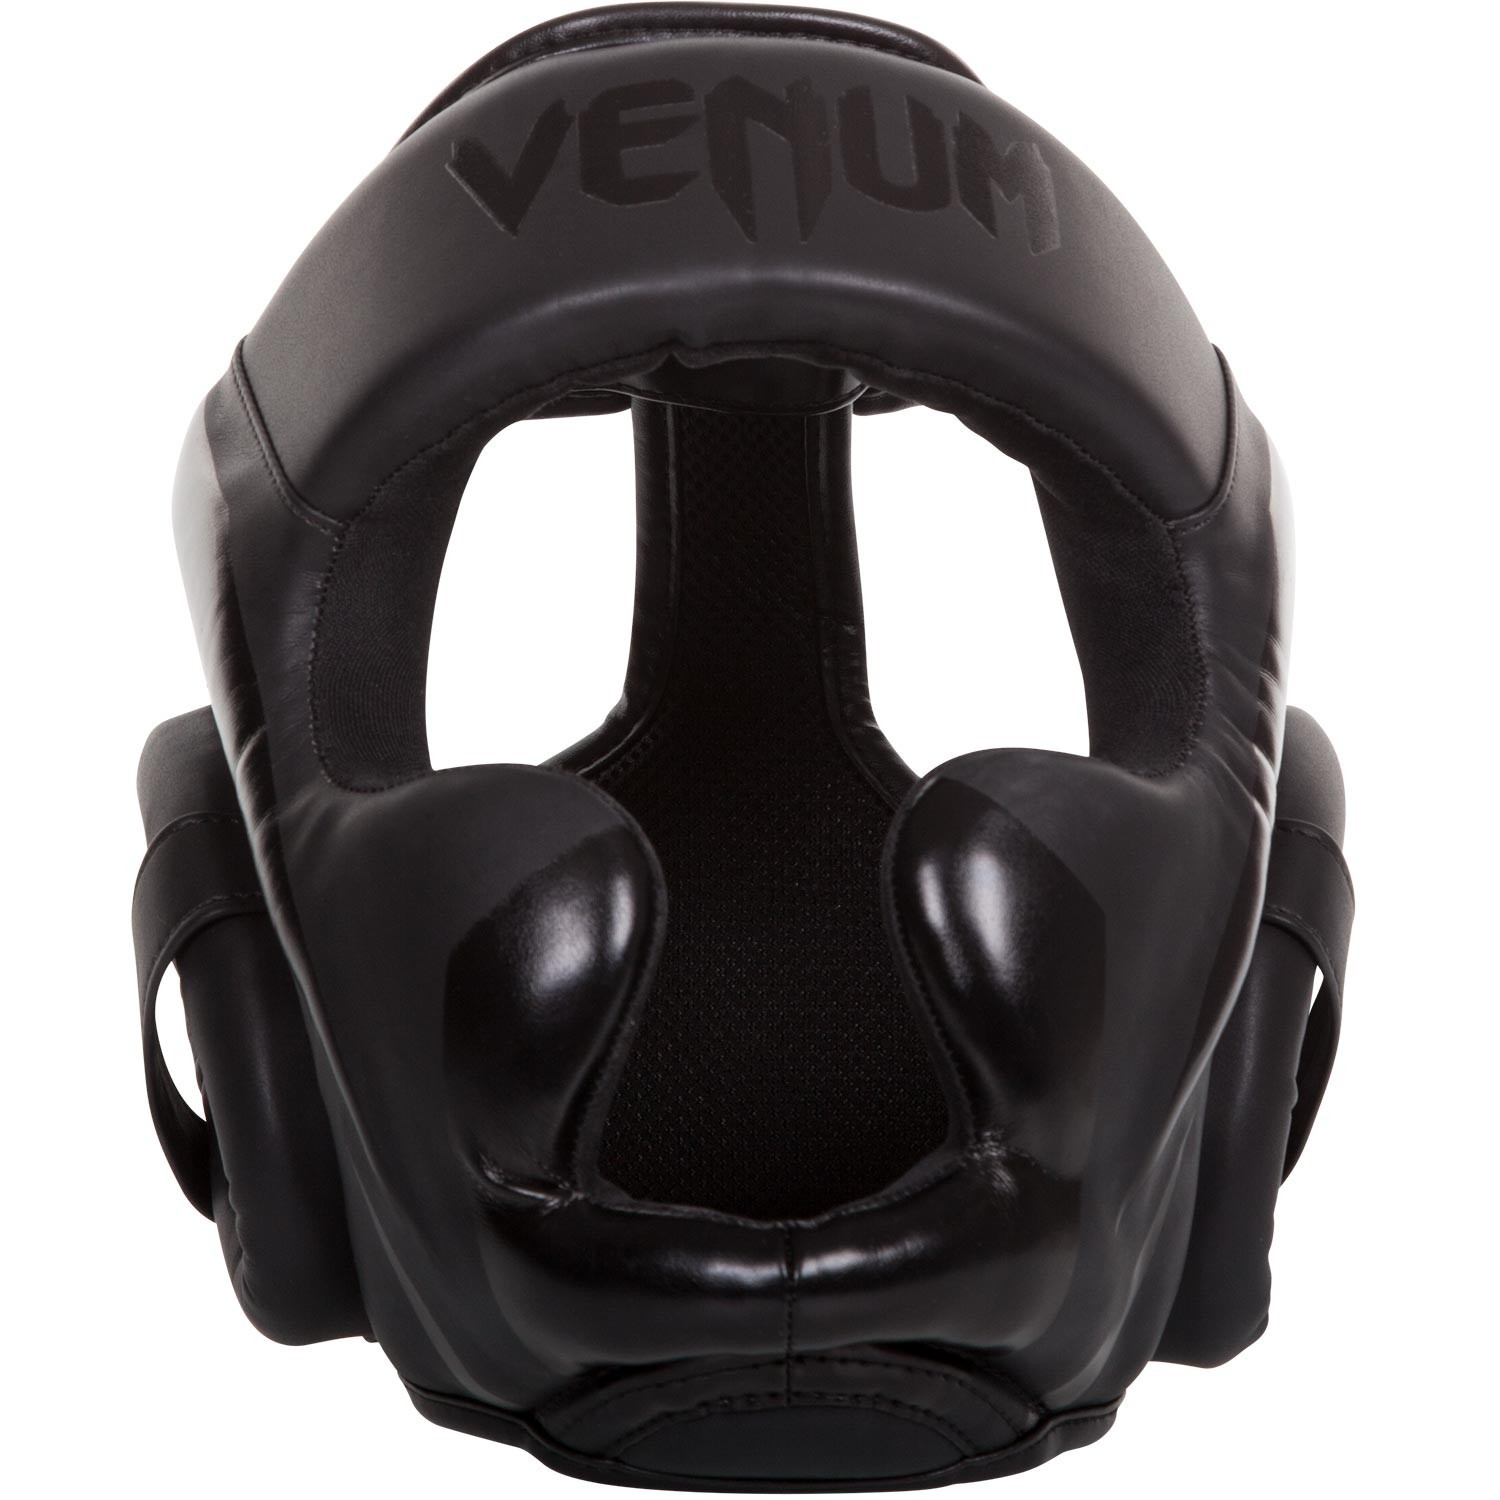 Venum Elite Headgear Black - Venum